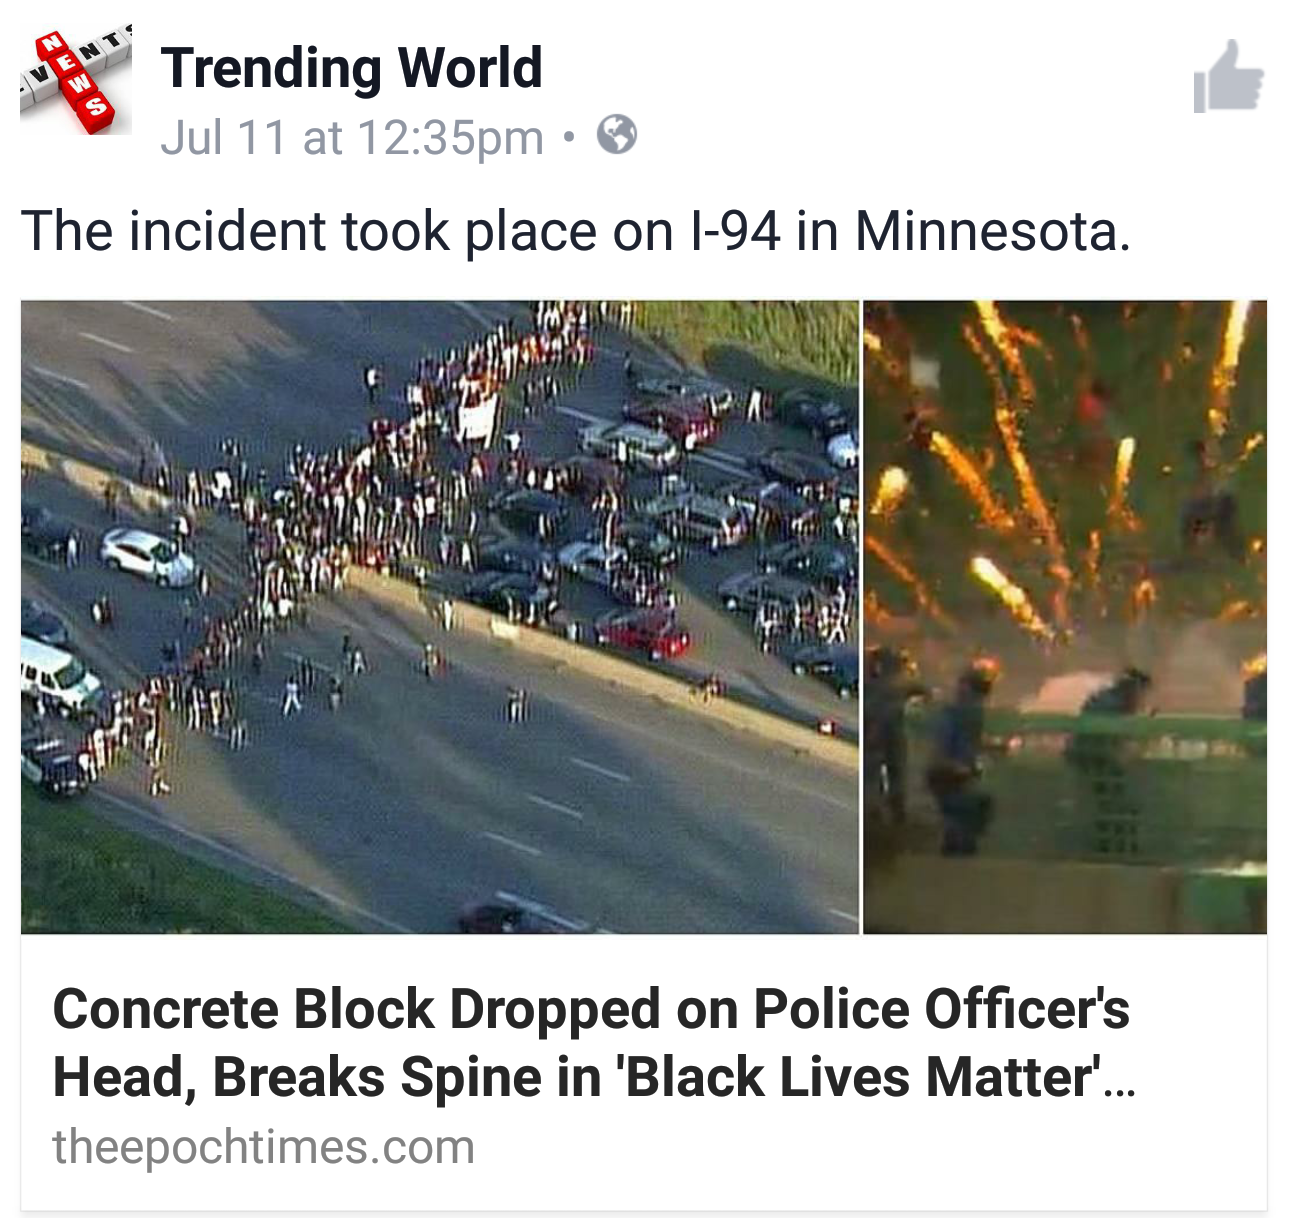 Violent protests are what the bias media likes to etch into our brains.